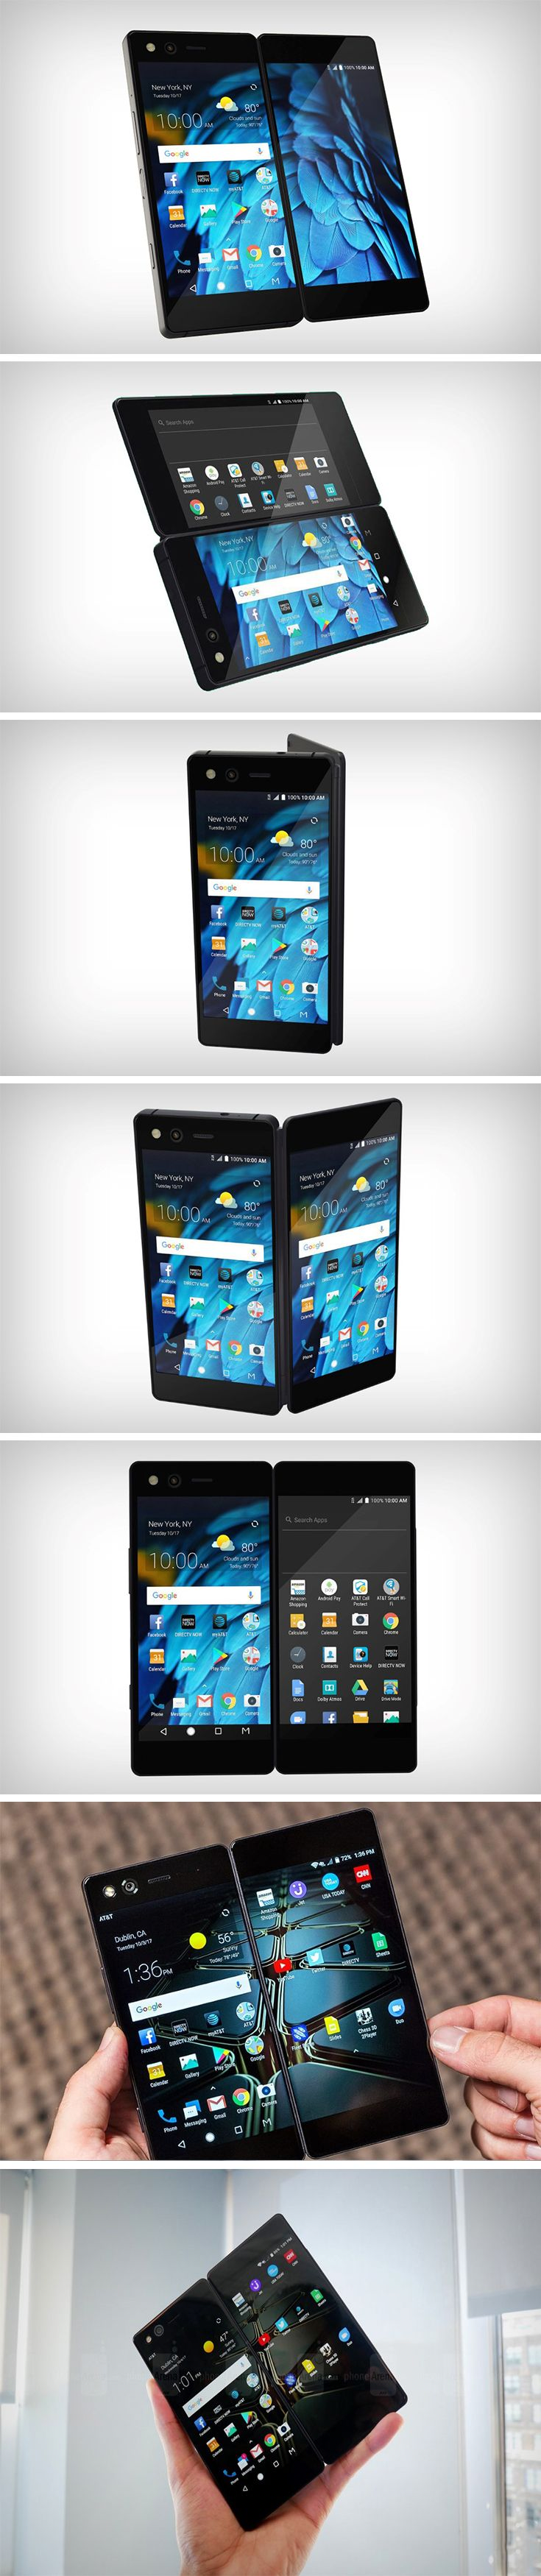 The ZTE Axon M dares to do something no phone company has dared to. A phone with dual touchscreen displays. The ZTE Axon M comes slightly thicker than your average phone, and you notice a hinge running down the right edge. That's because when you open the phone out, you get the added benefit of two touchscreen displays.